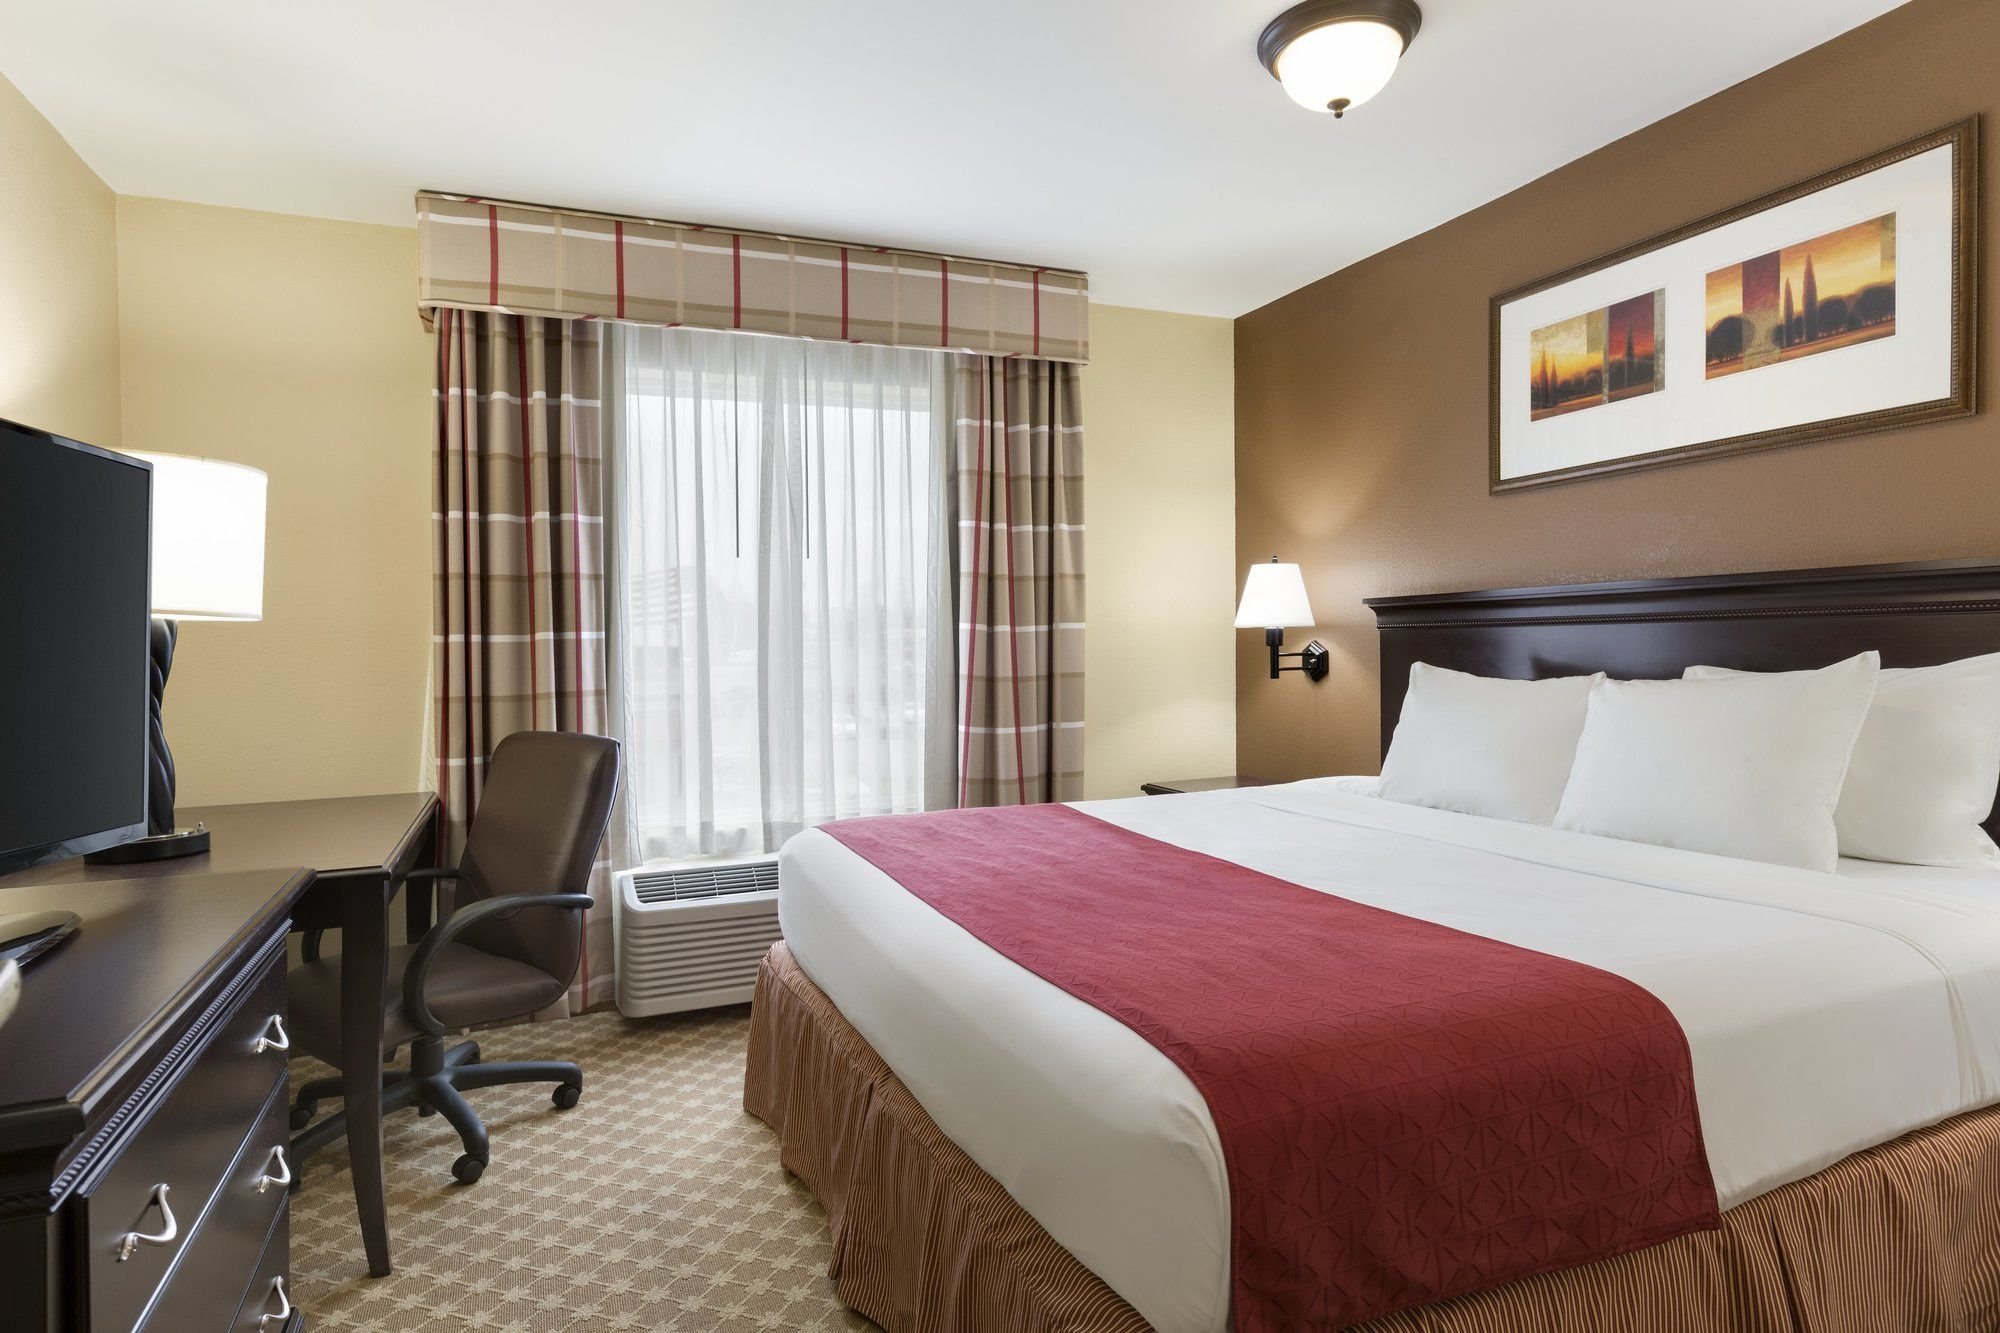 Country Inn & Suites in Asheville, NC